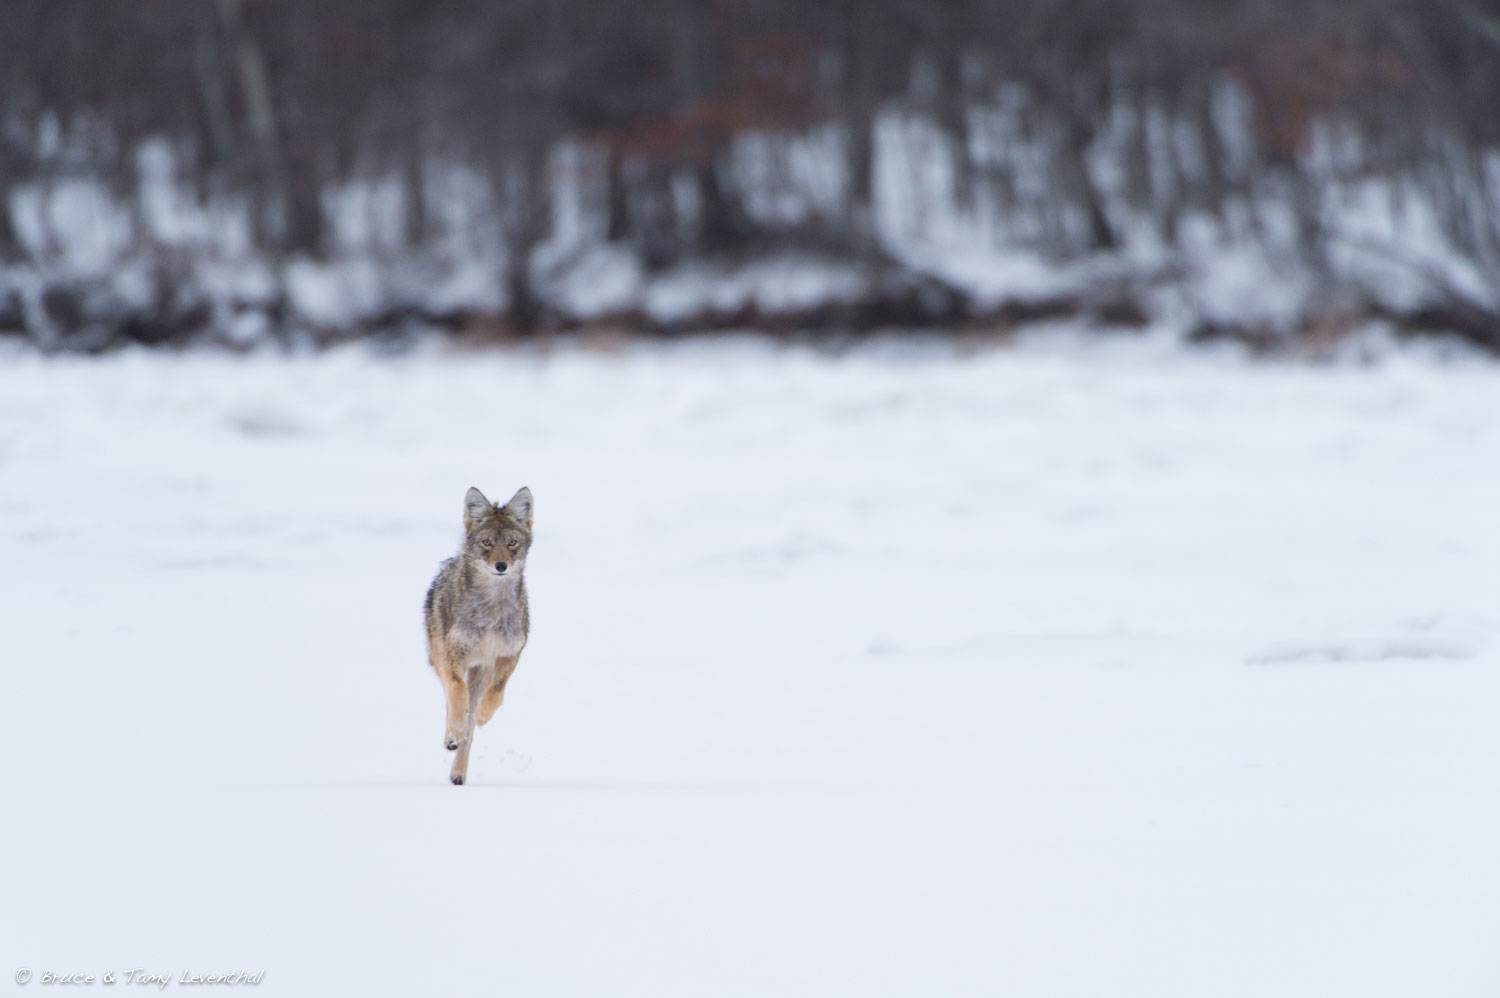 Rush to the Other Side ( Canis latrans )  Nikon D4 + Nikon 200-400mm f4VR + Nikon TC14EII